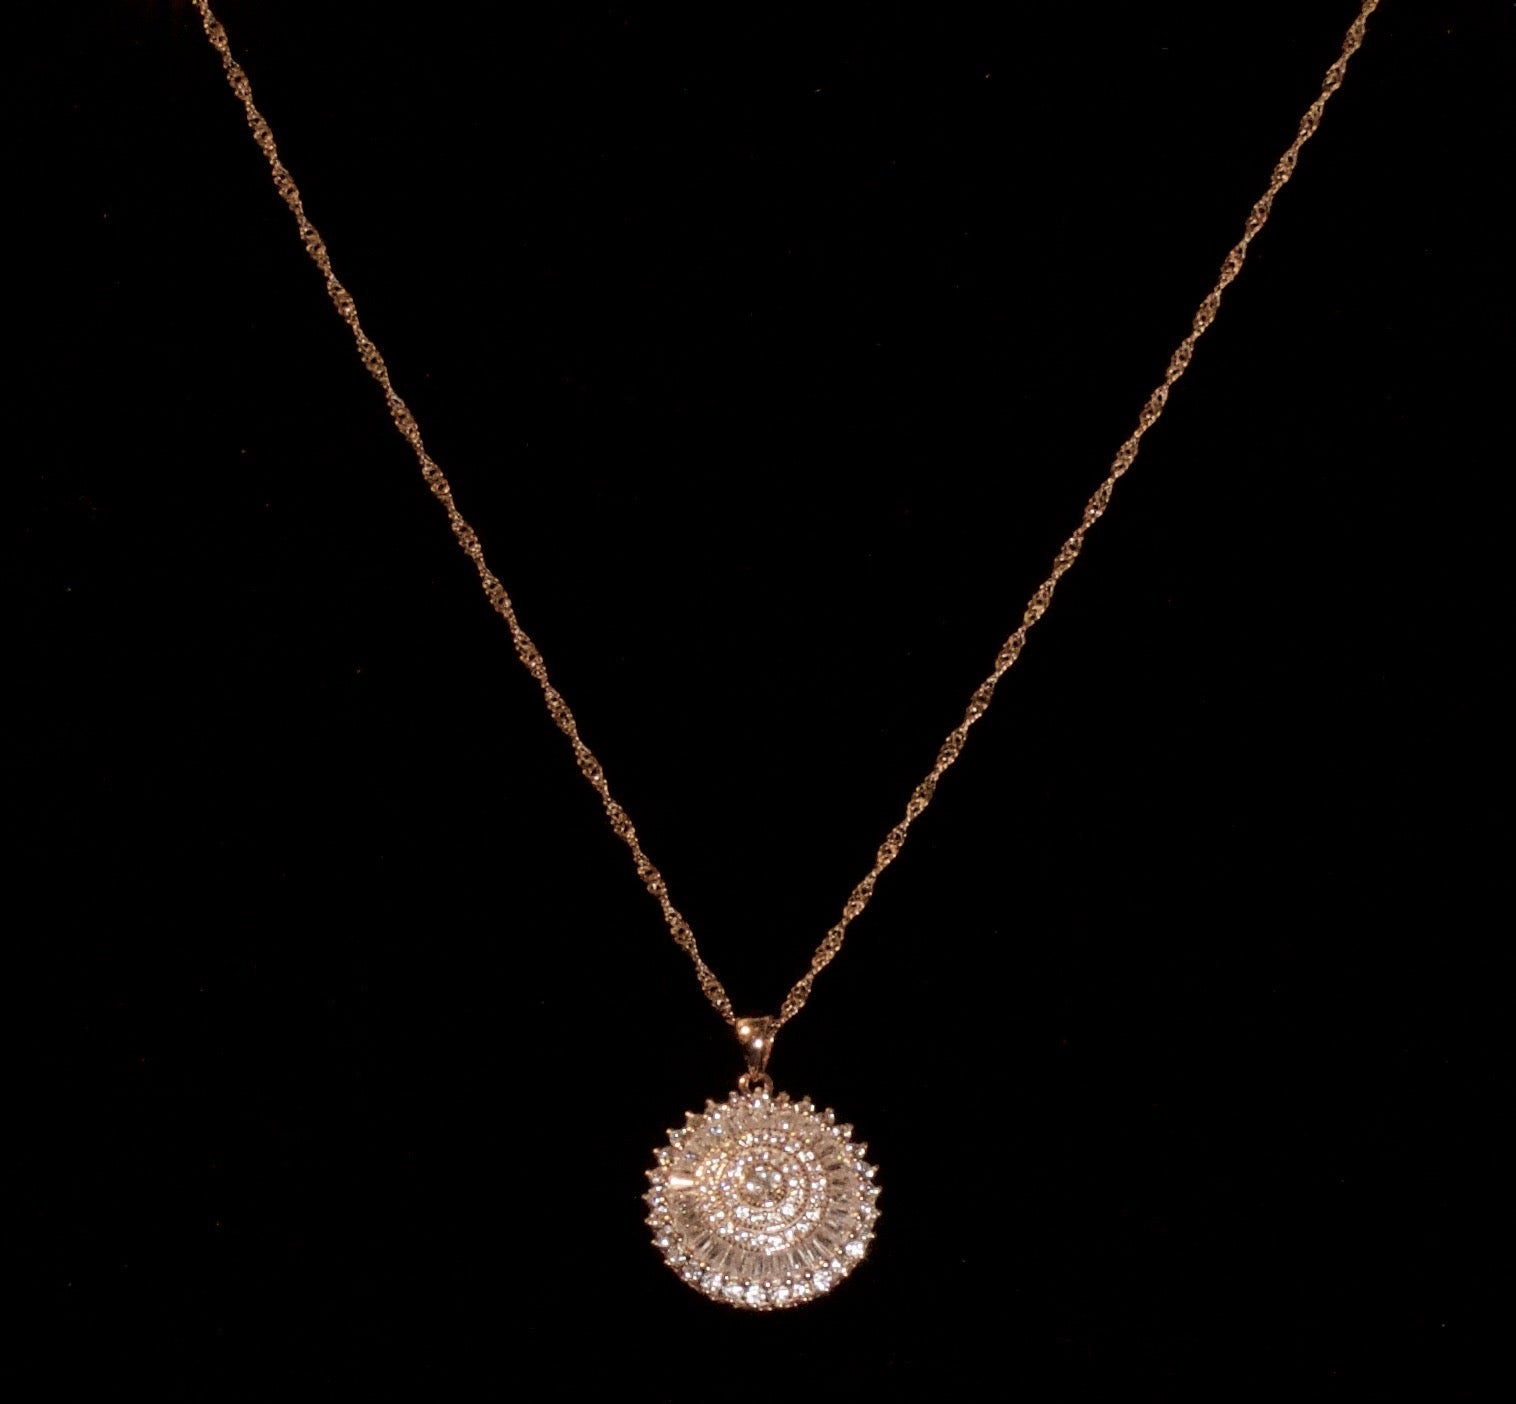 14K Rose Gold Plated Sterling Silver Necklace + Cubic Zirconia Pendent